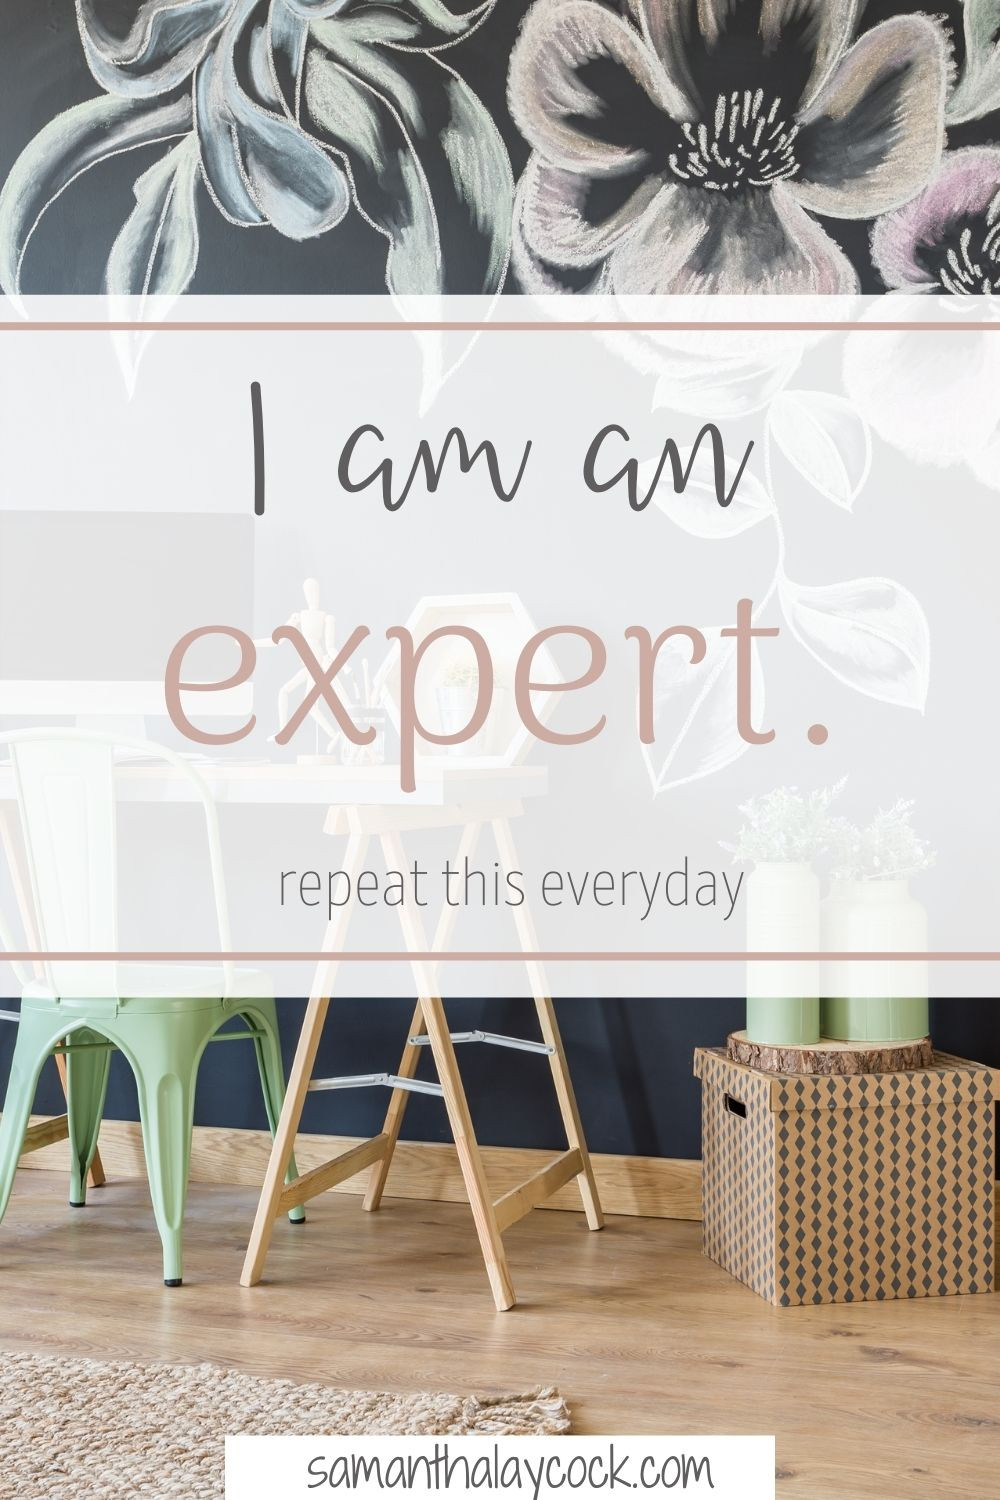 Use the affirmation, I am an expert, daily.